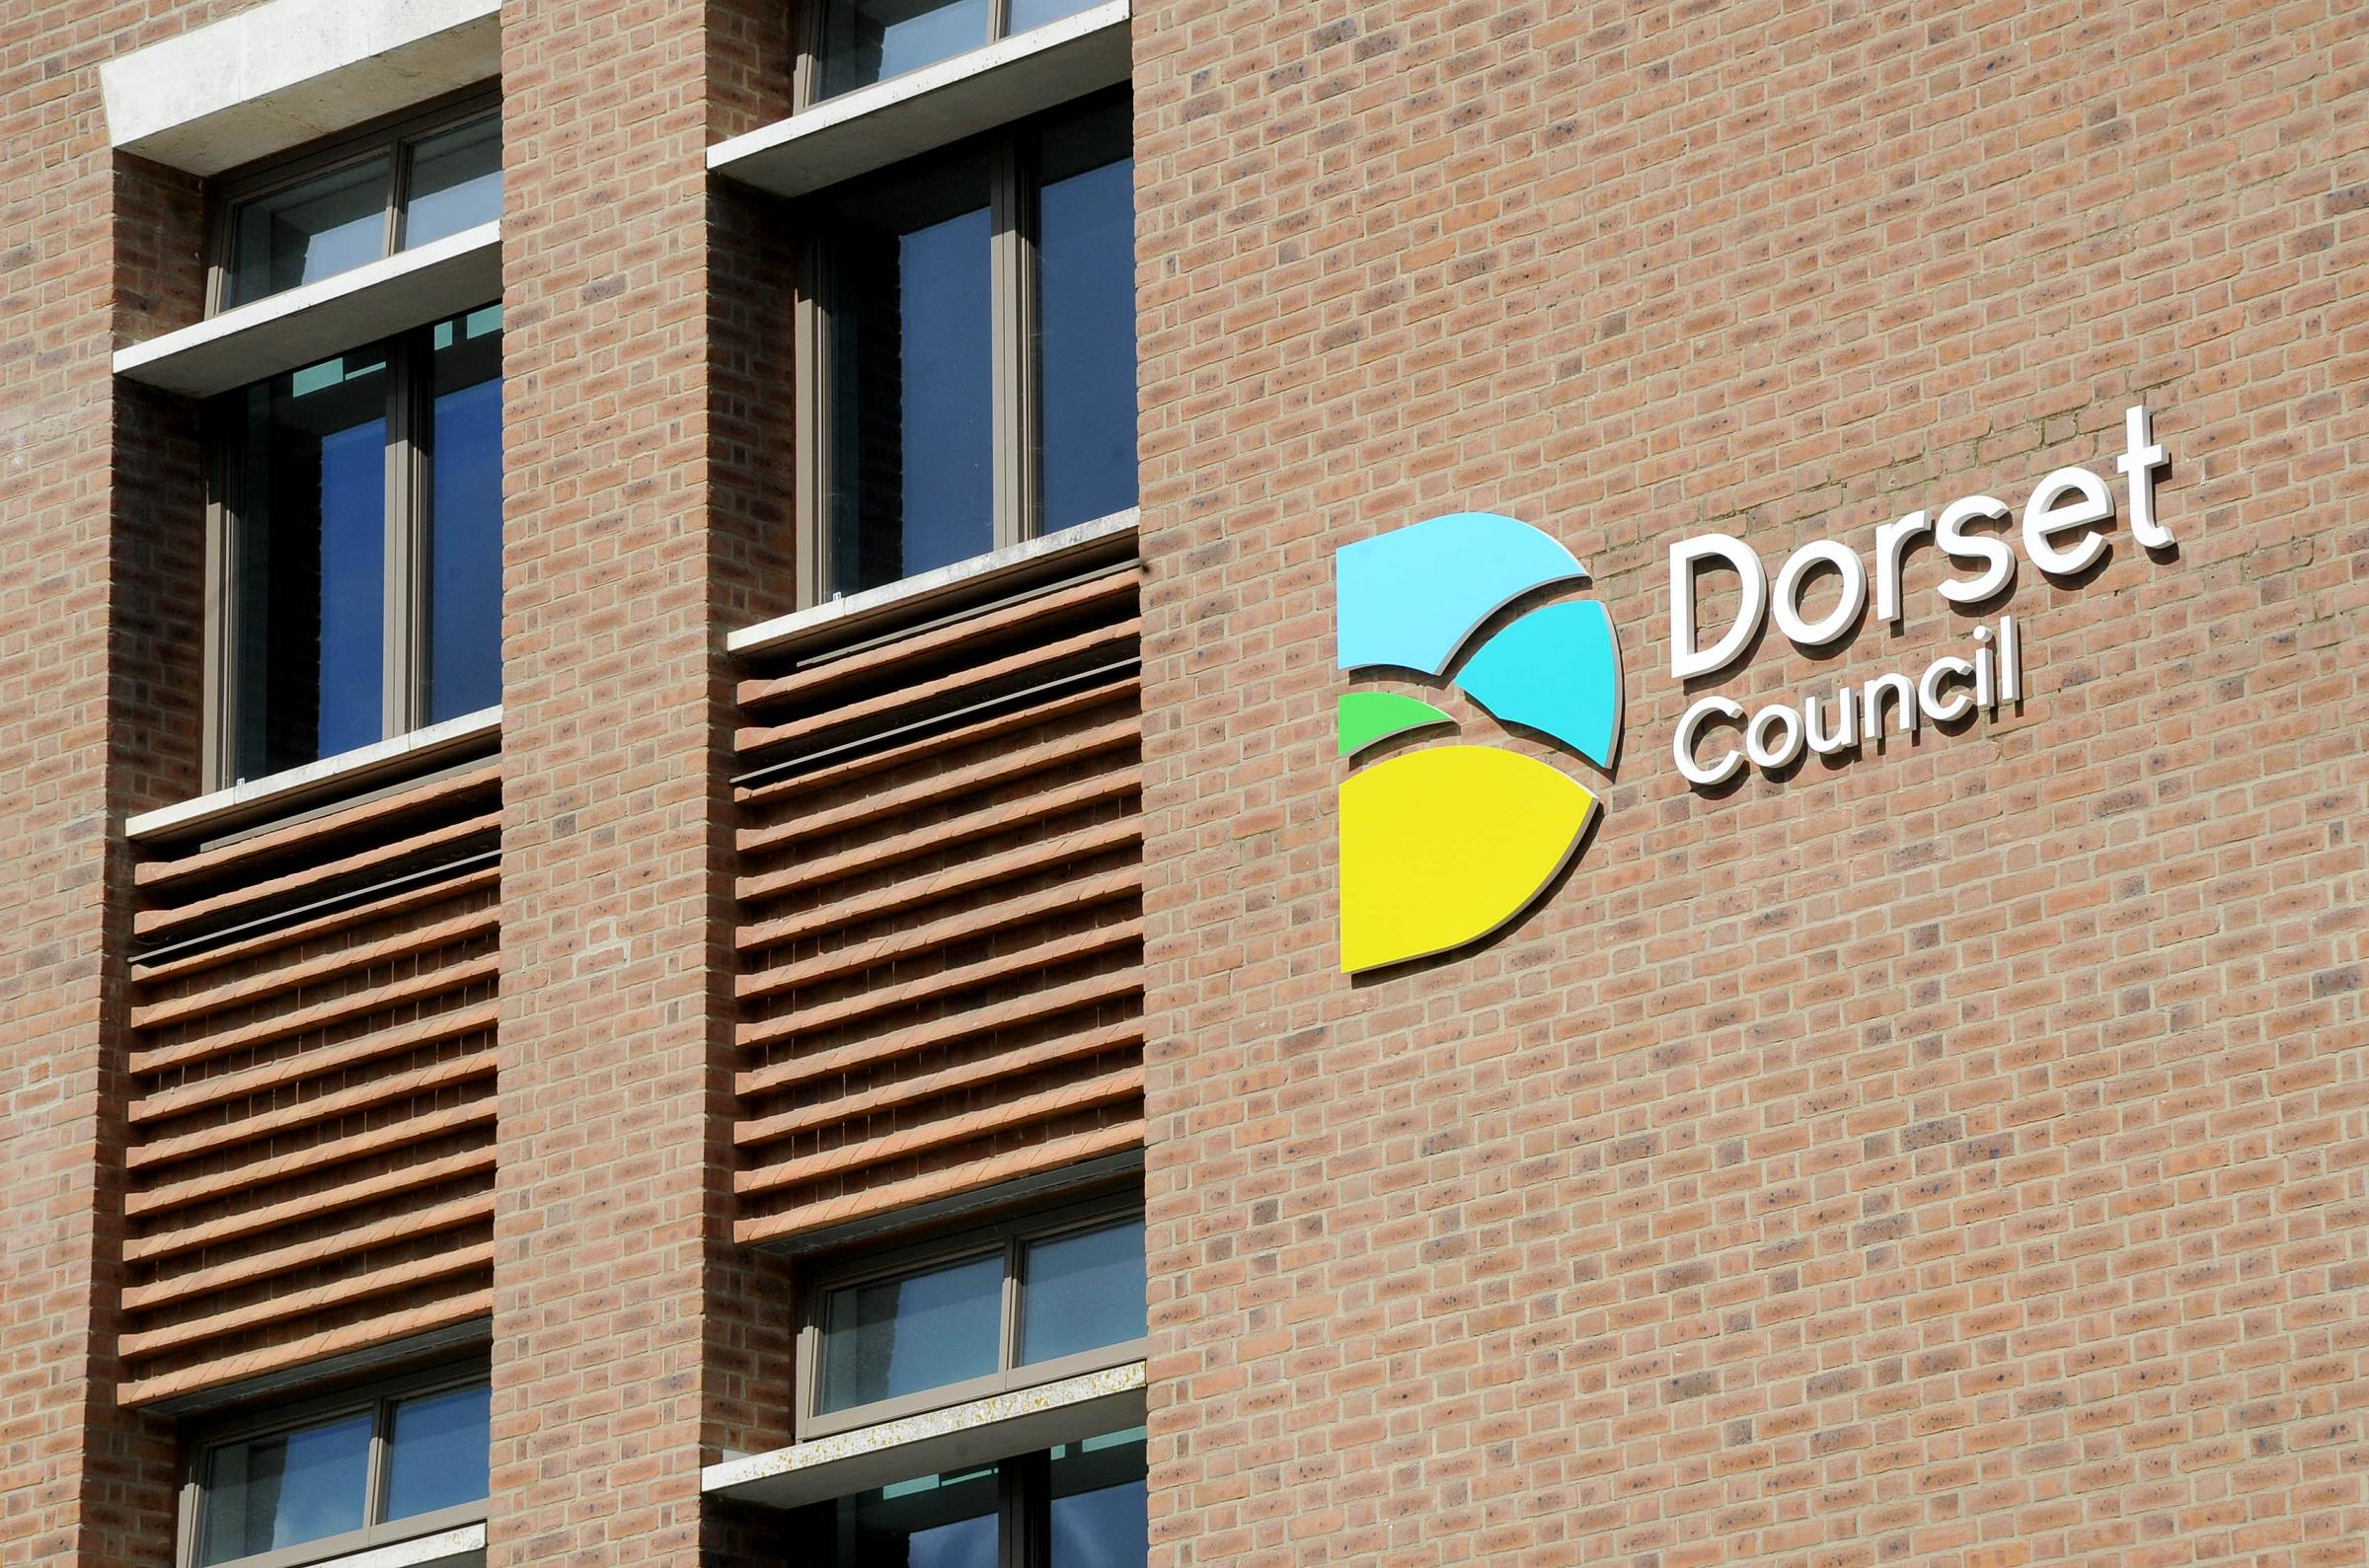 Dorset Council committee to hold 'secret' meeting about complaints